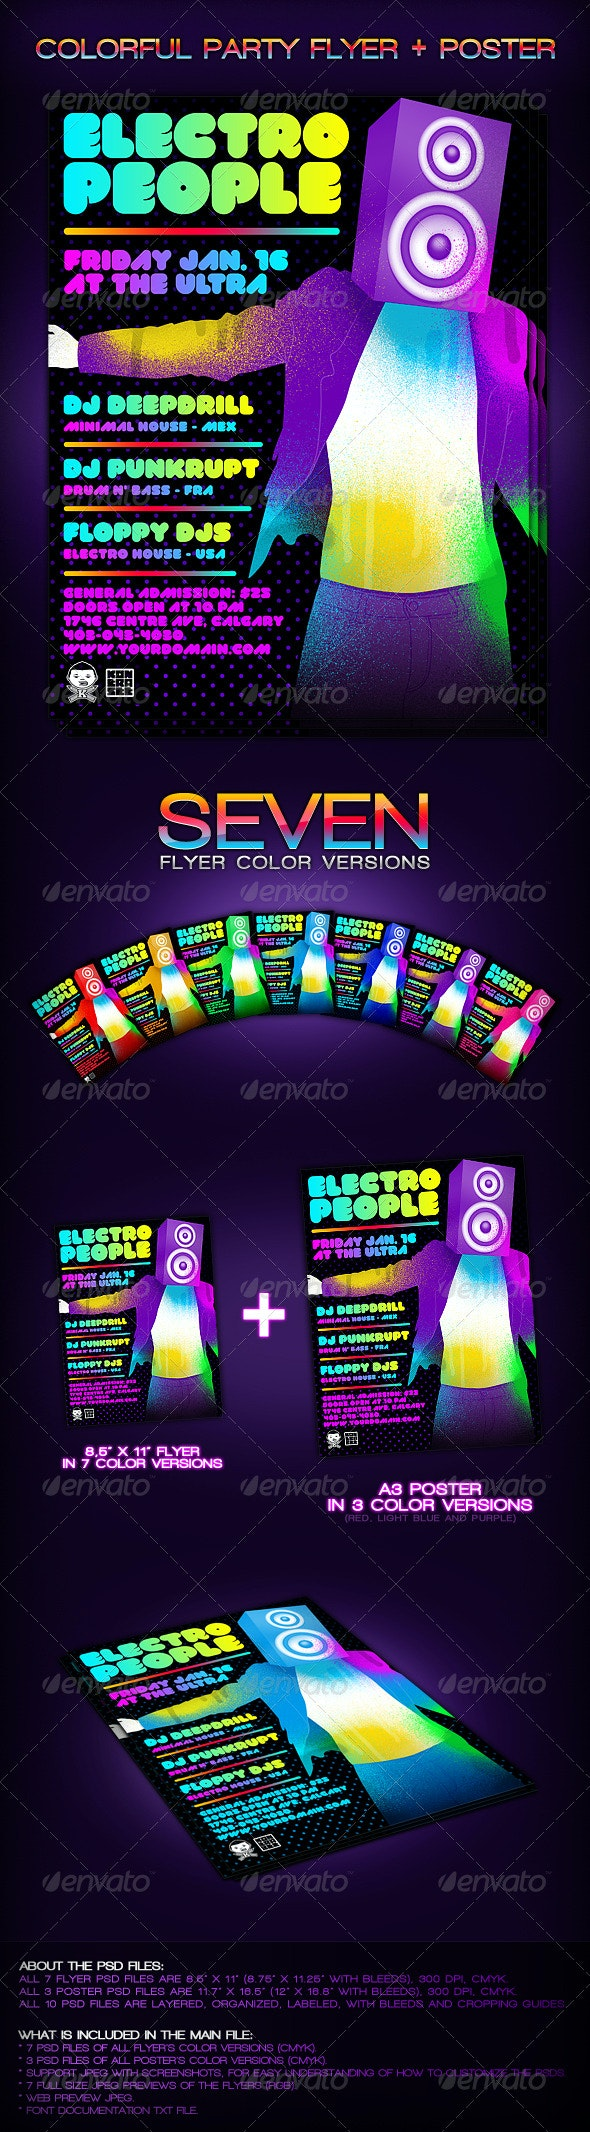 Colorful Party Flyer + Poster - Clubs & Parties Events